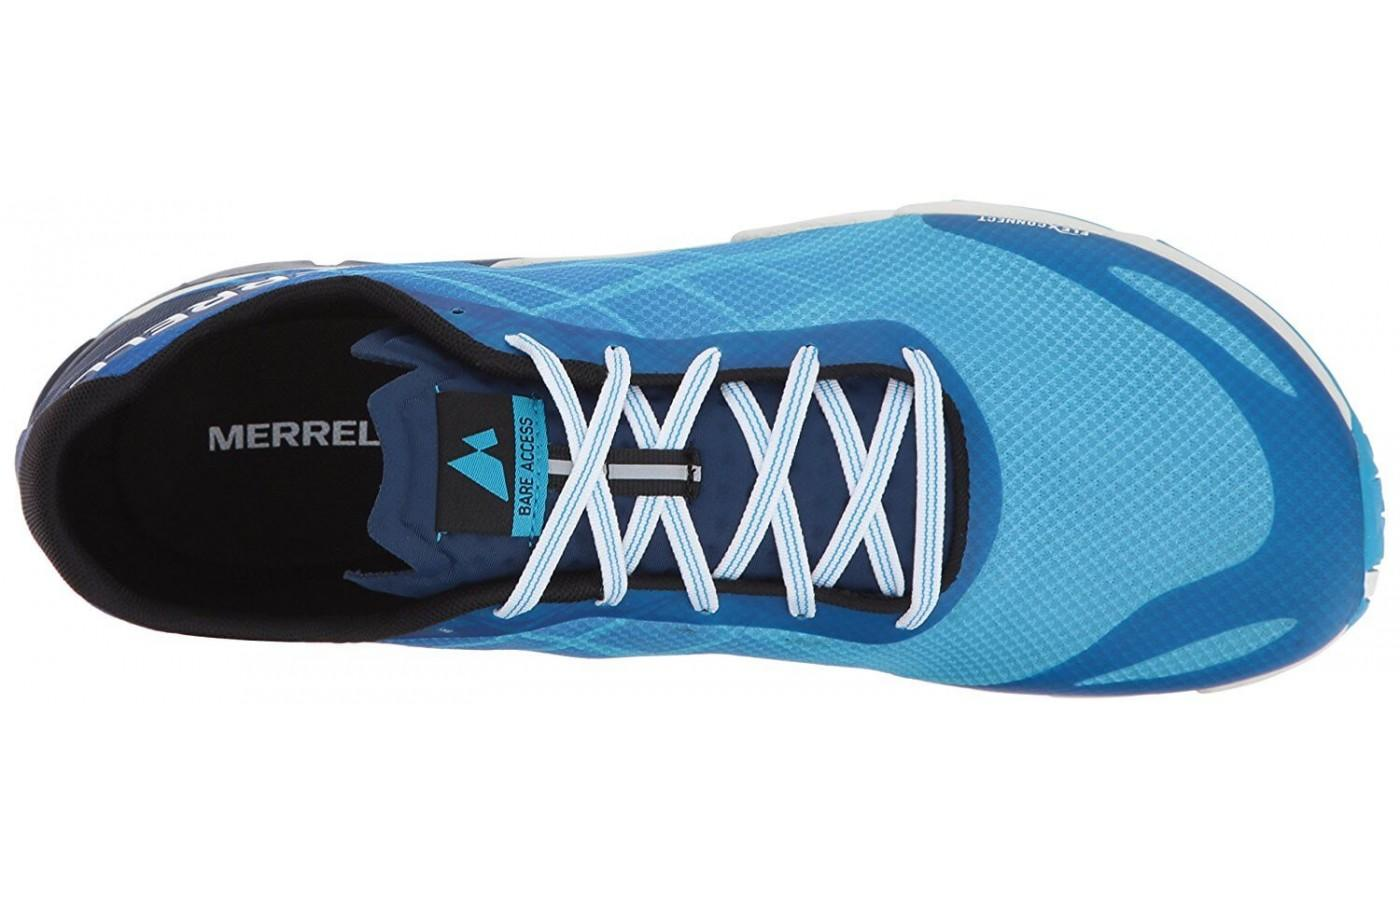 The upper of the Bare Access Flex is breathable and comfortable